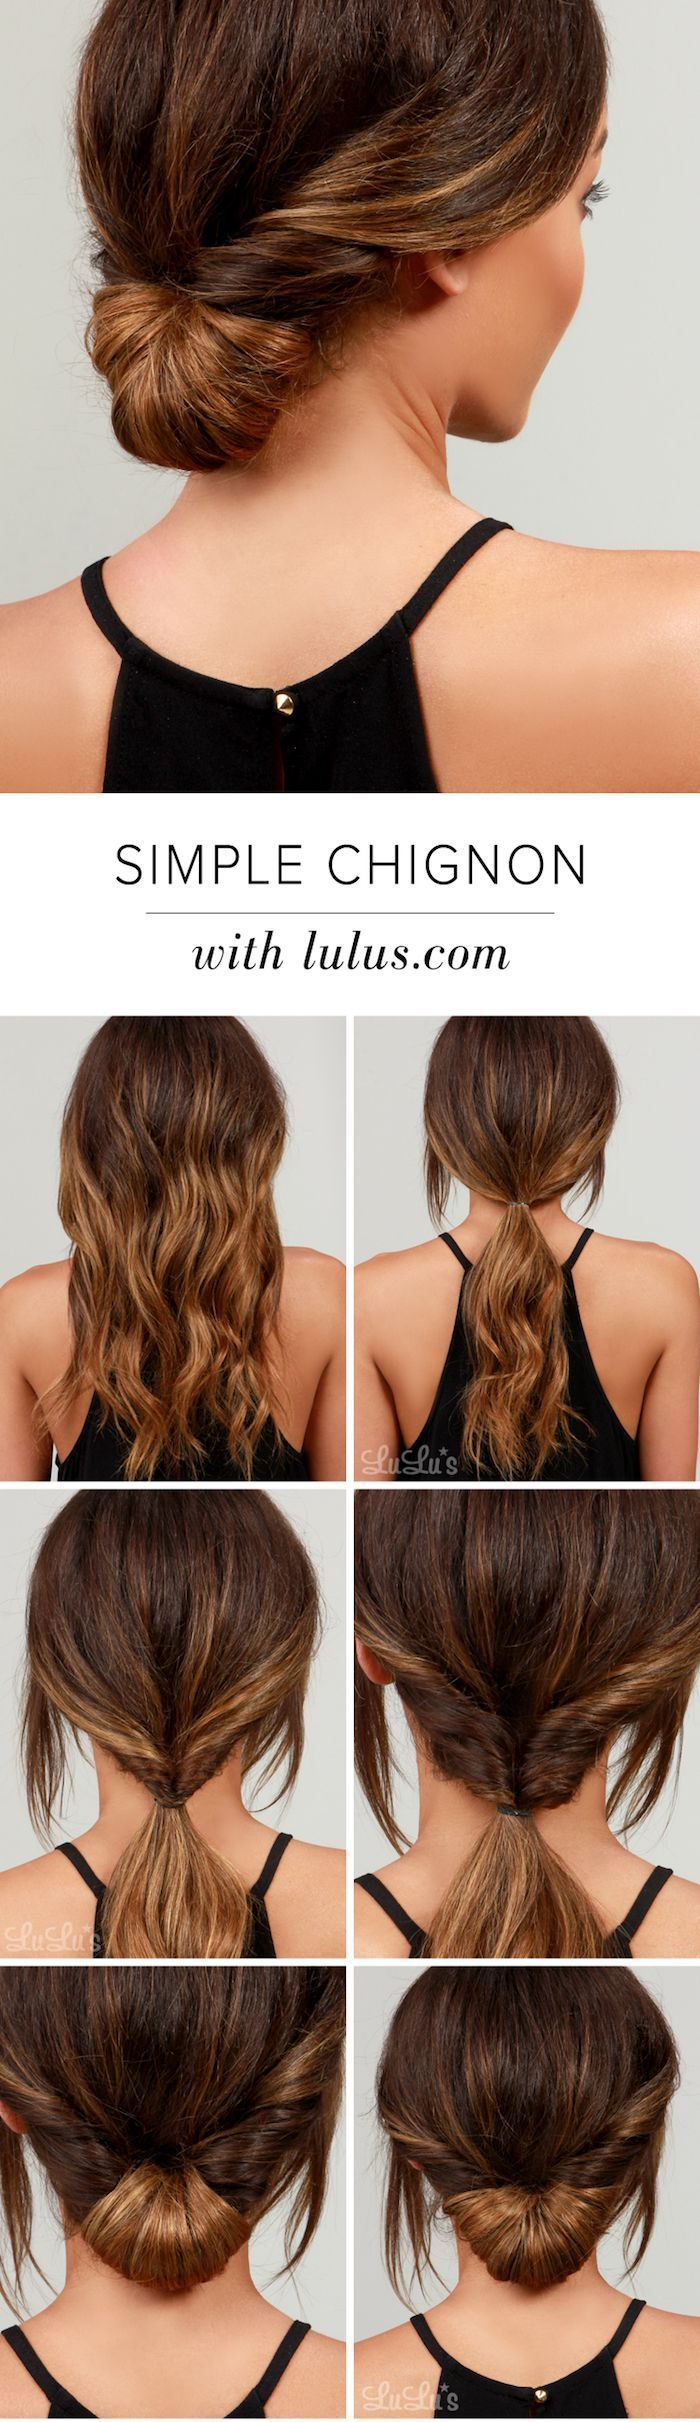 ▷ 1001 + inspiring ideas for simple hairstyles for everyday life